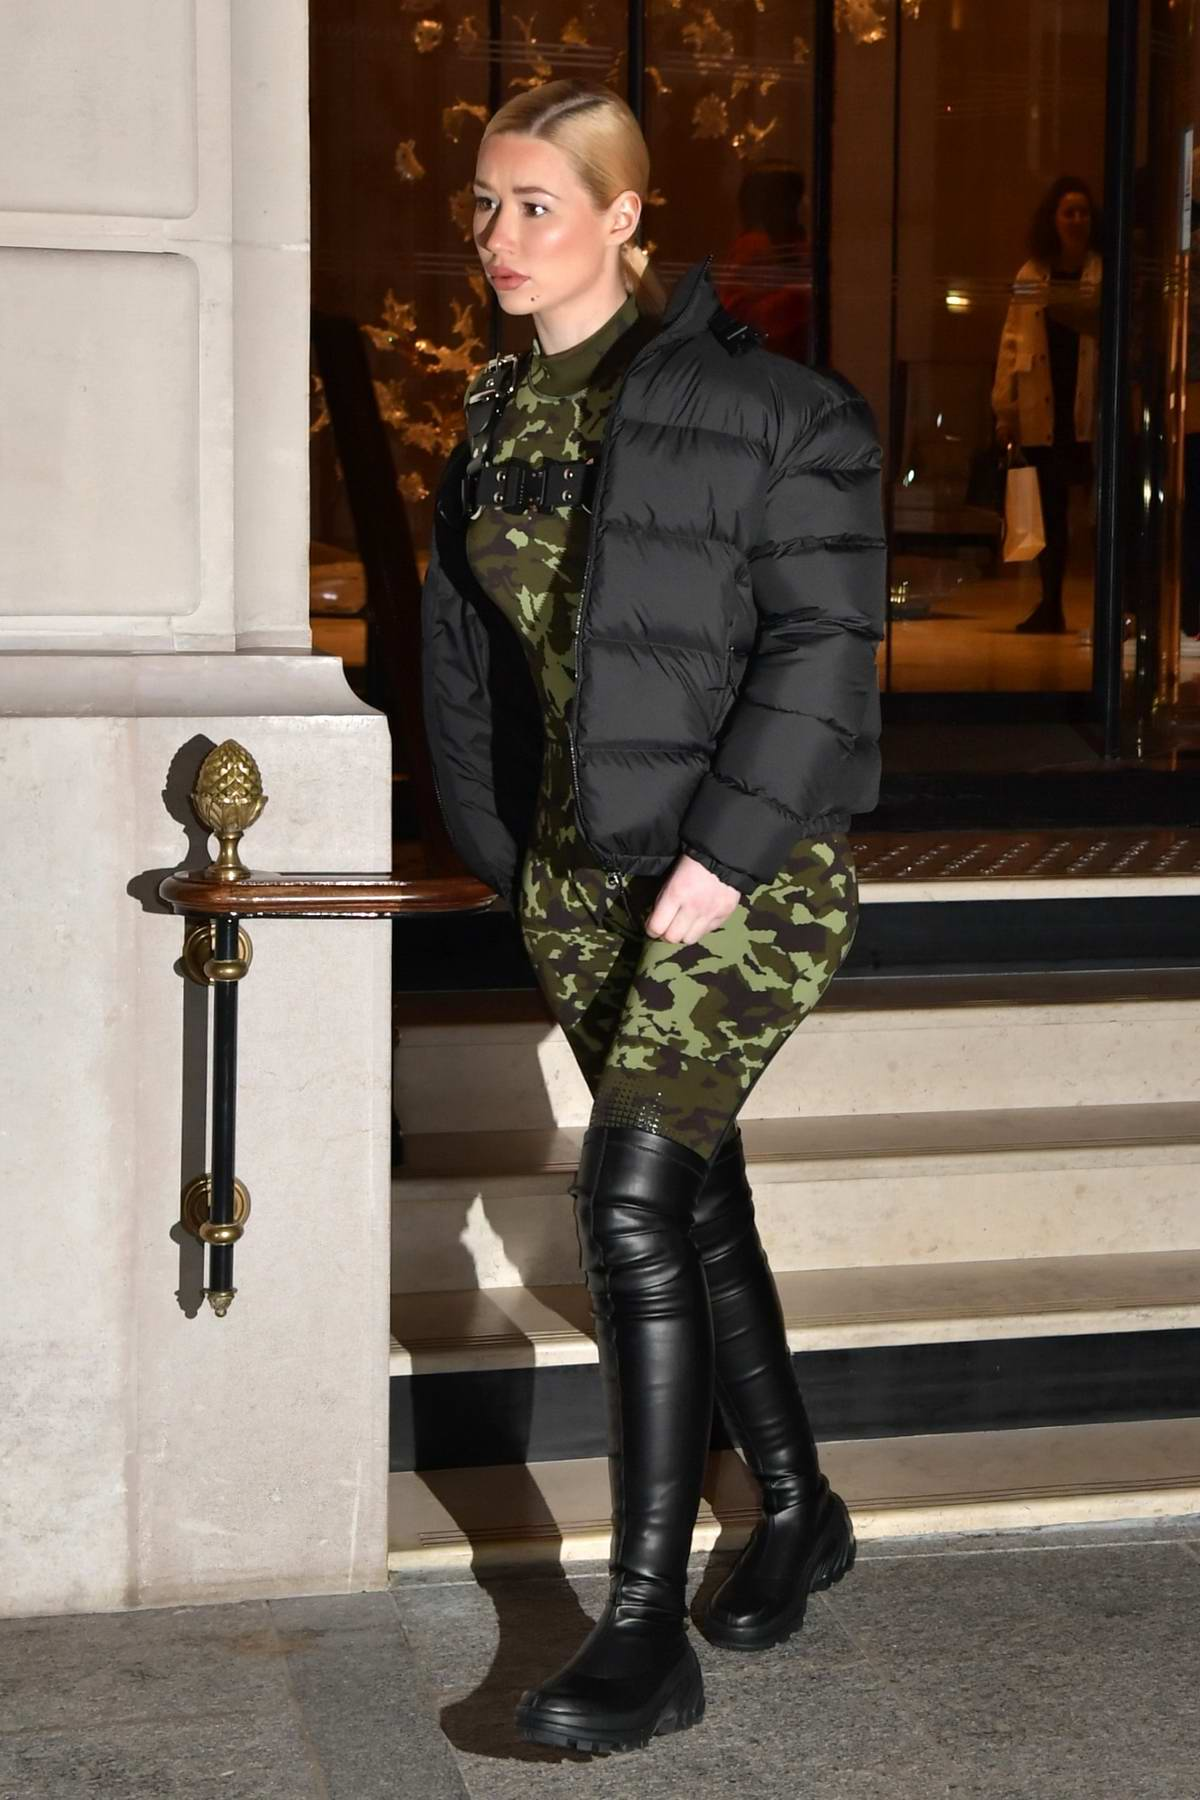 Iggy Azalea seen wearing a camo bodysuit while out with Playboi Carti in Paris, France